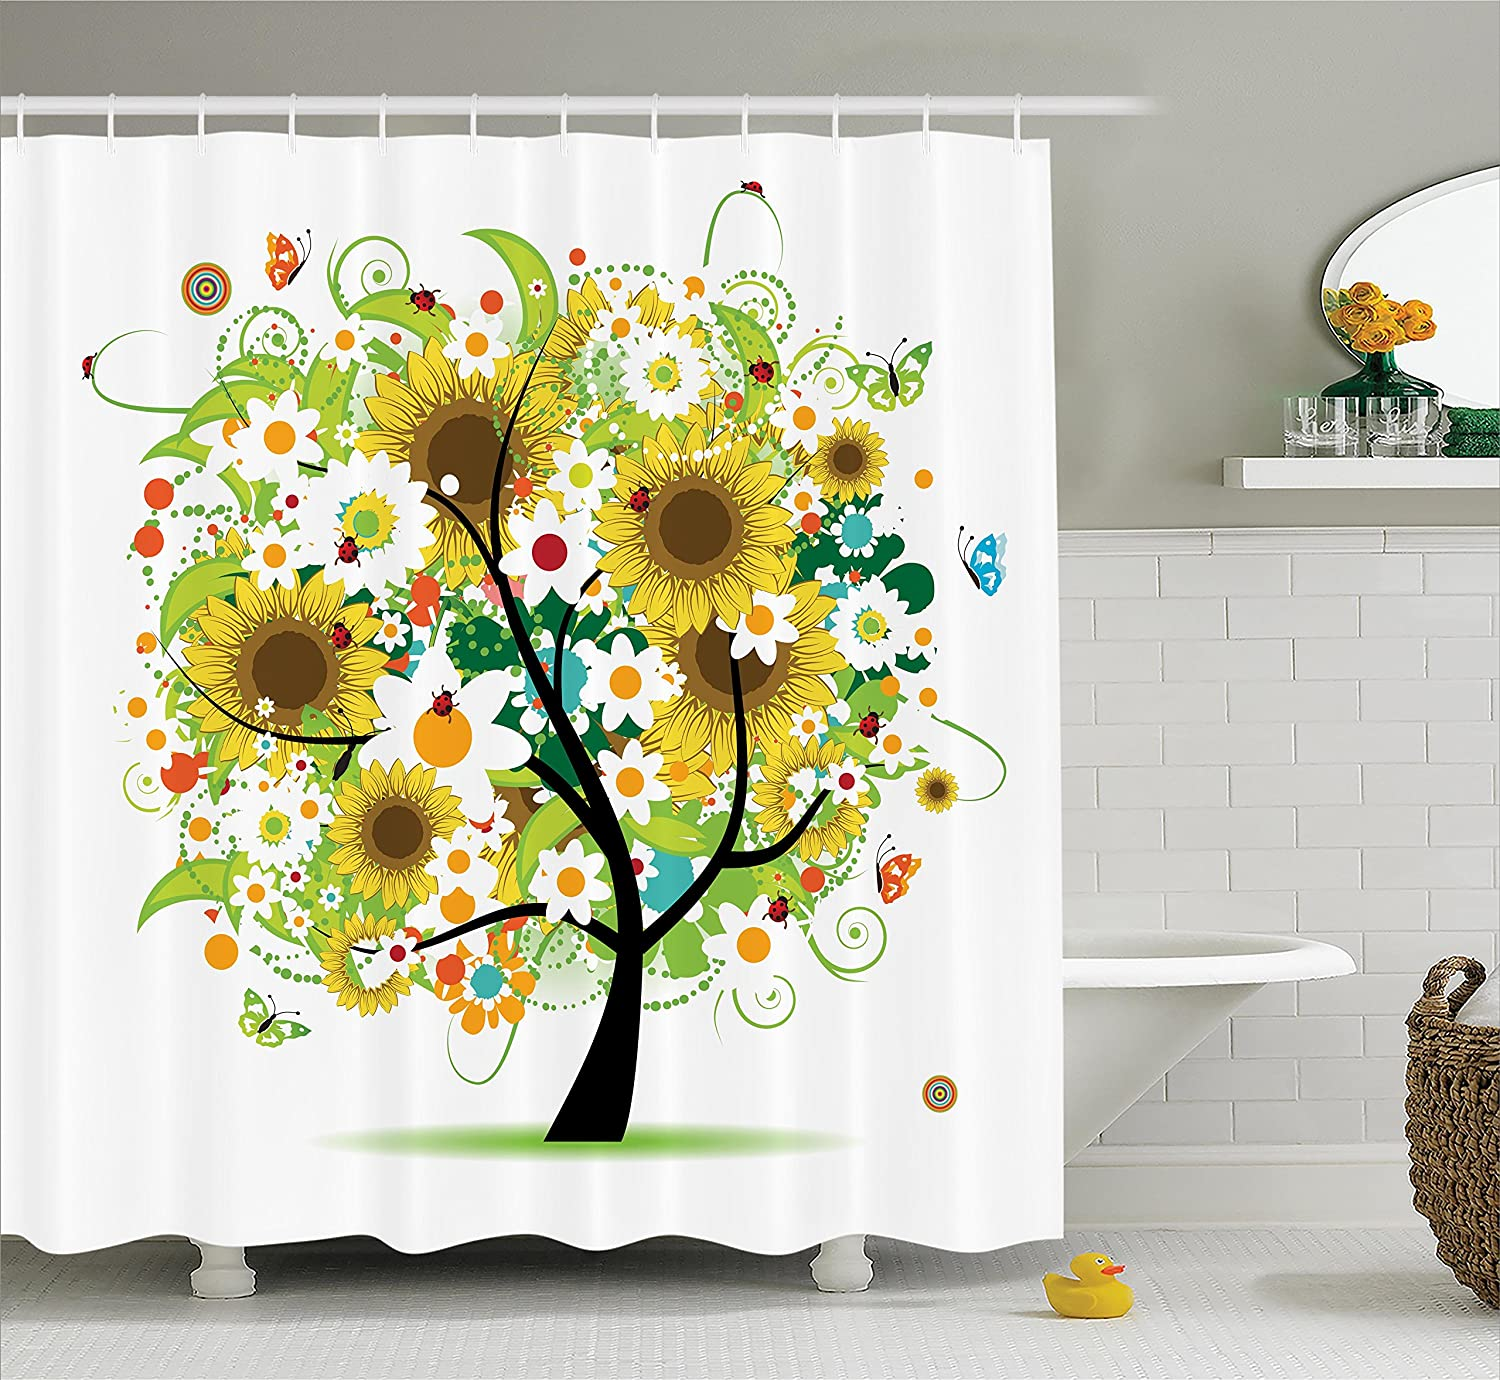 Ambesonne Sunflower Decor Collection, Floral Tree with Daisies Sunflowers Butterflies Ladybugs Insect Swirl Spring Fantasy Image, Polyester Fabric Bathroom Shower Curtain Set with Hooks, Yellow Black